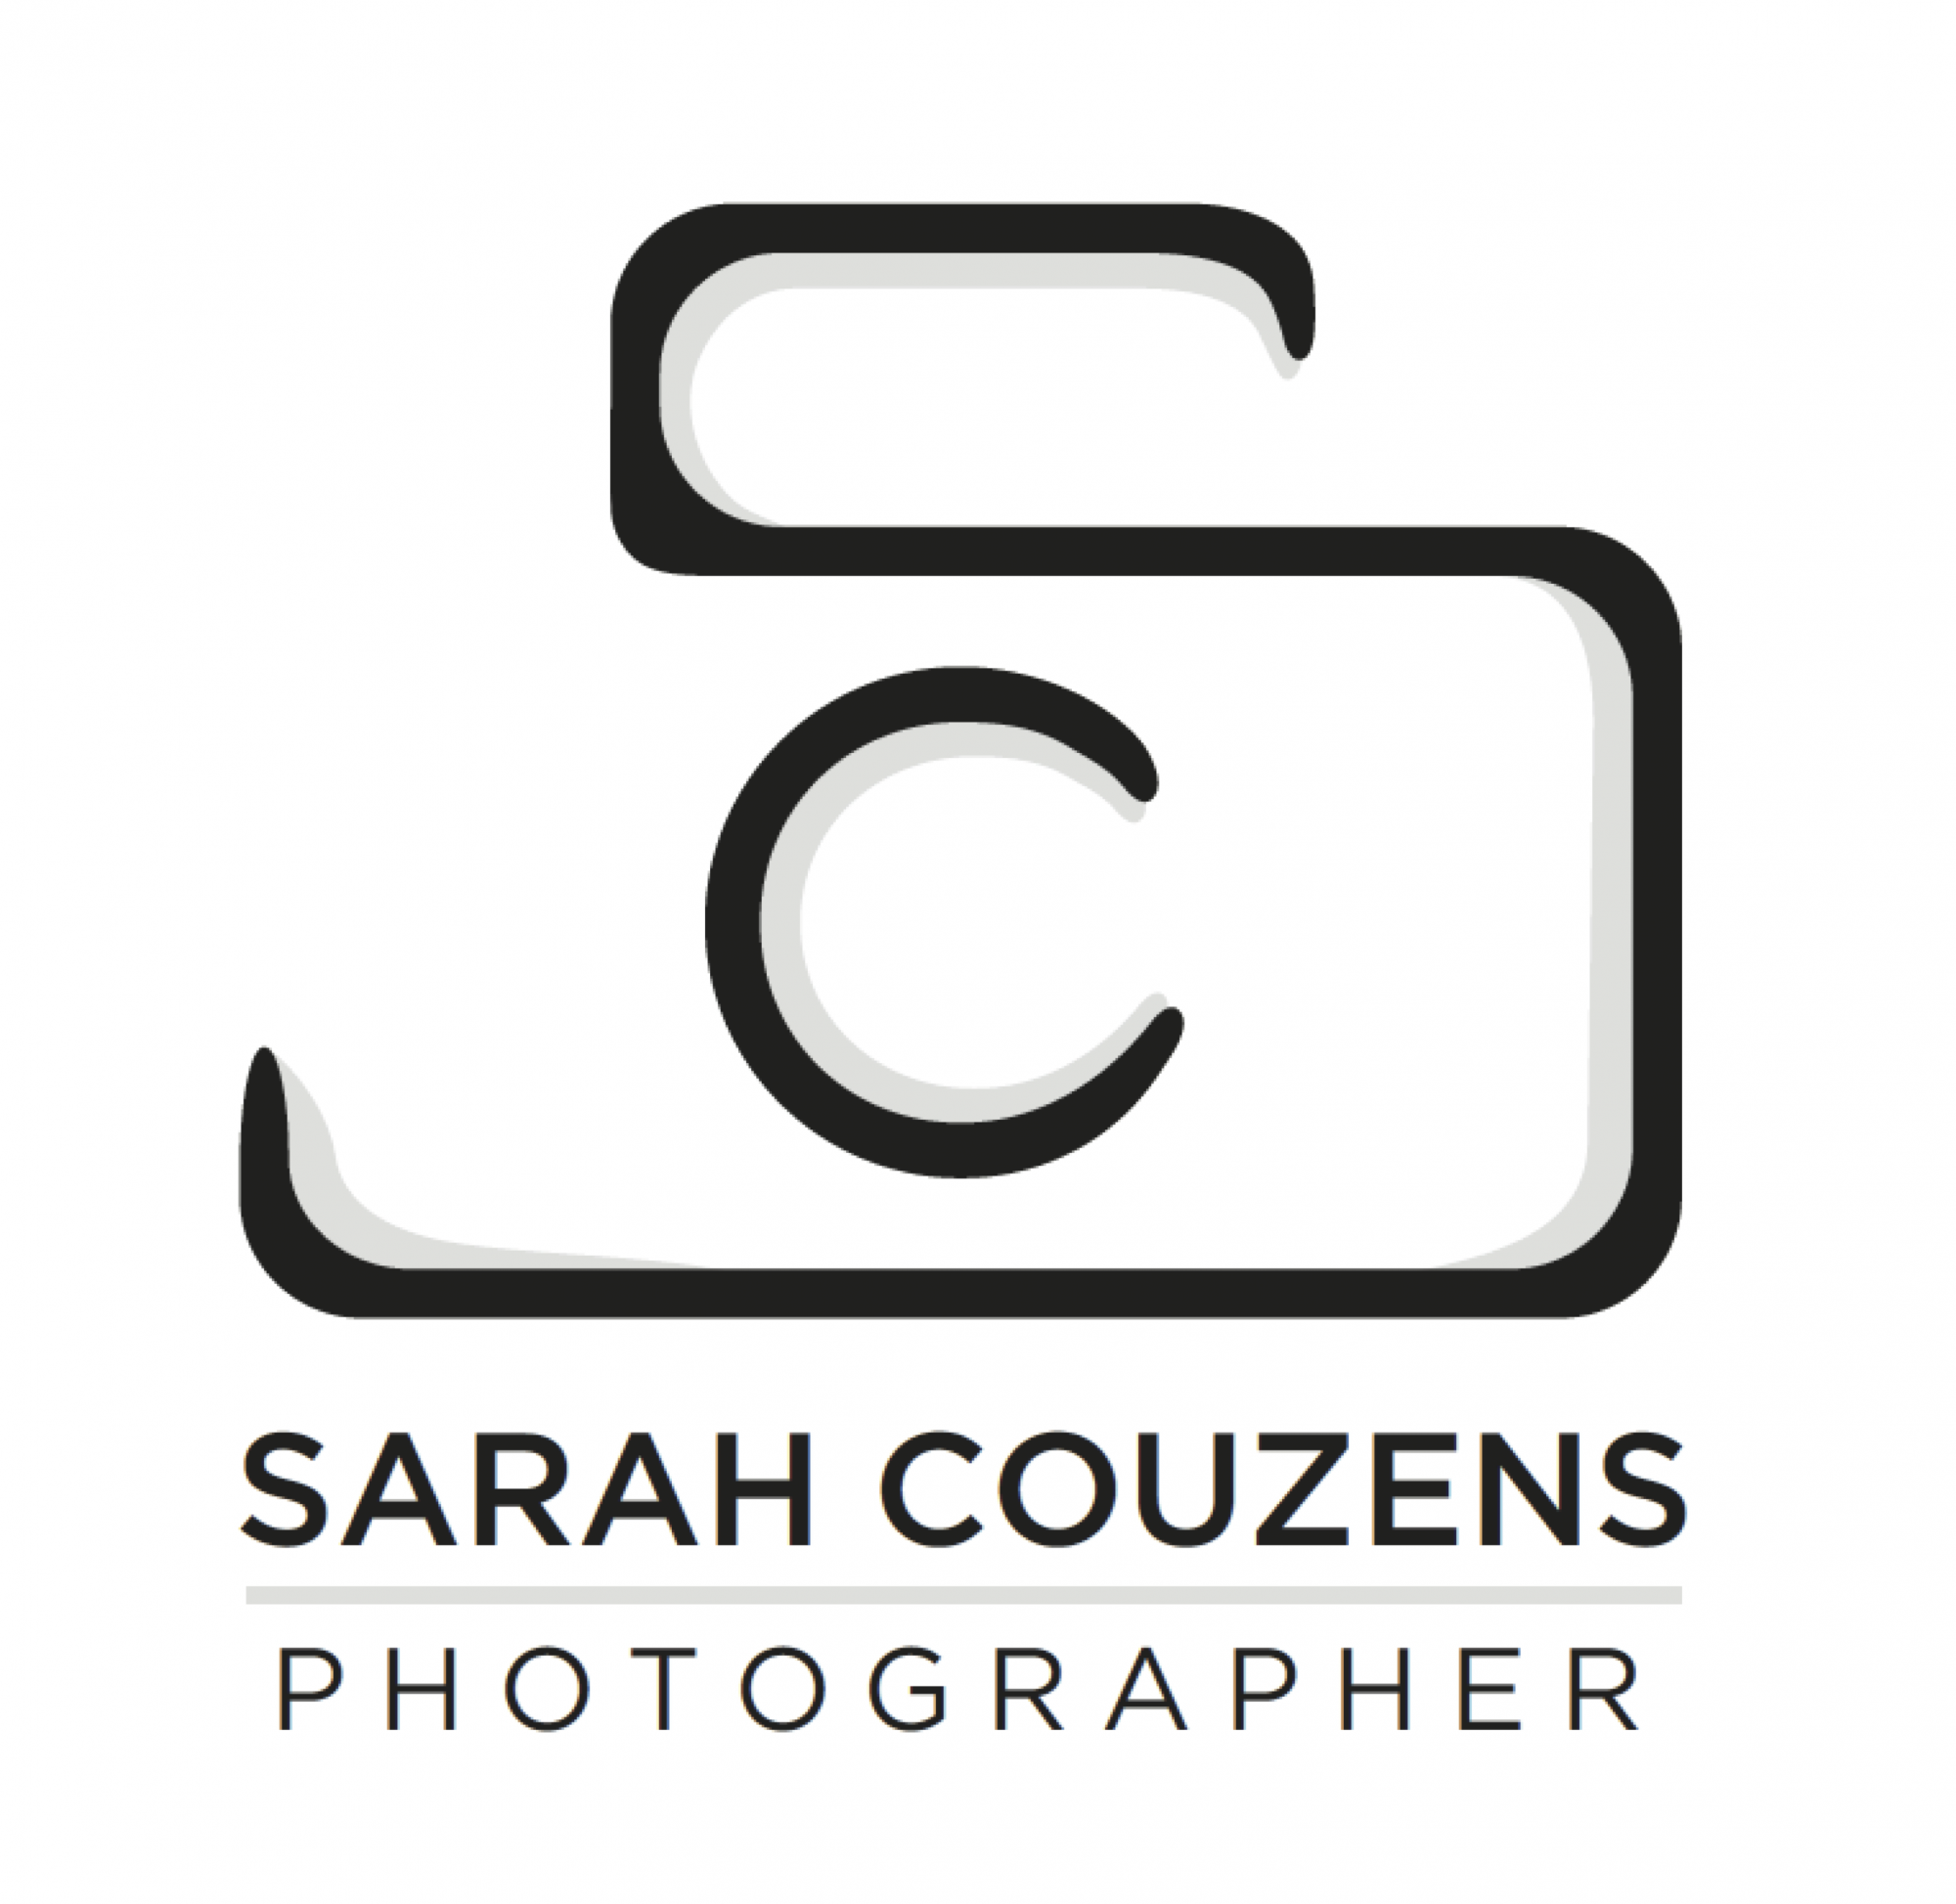 Sarah Couzens - Photographer | Brands of the World™ | Download ...